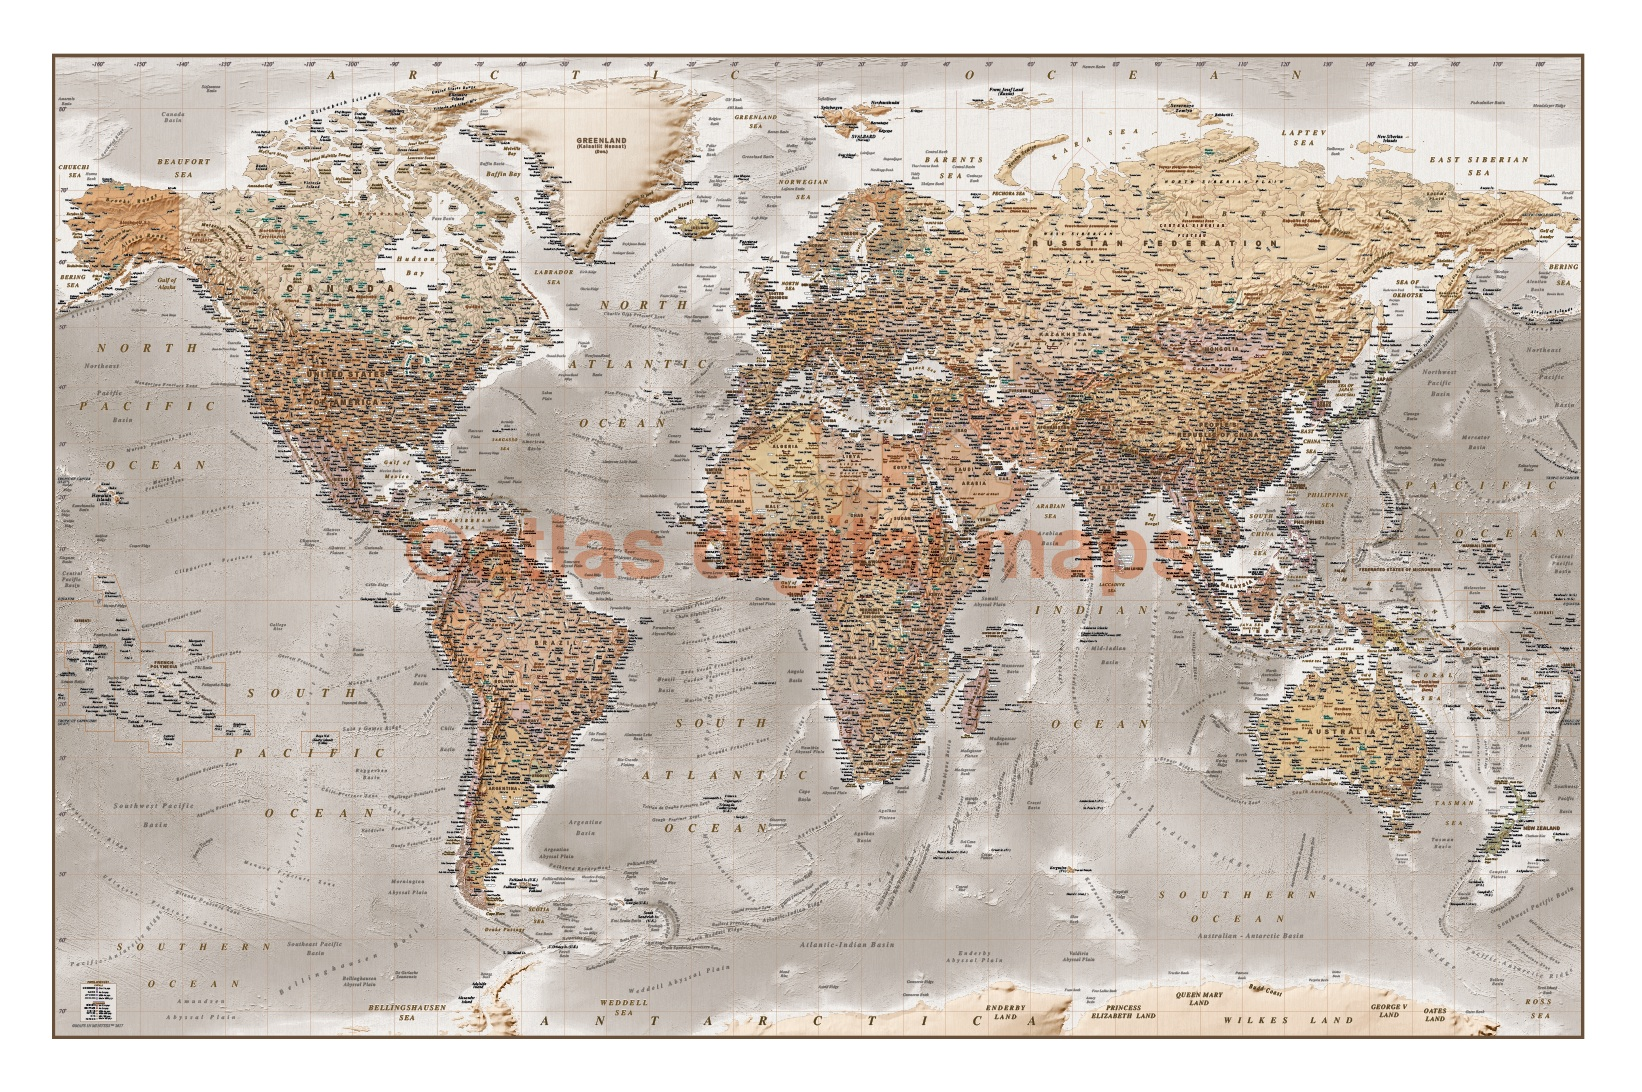 Framed canvas world wall map tan and stone large 60 x 38 antique style framed canvas world map antique style tan and stone size 60w x 38 gumiabroncs Images